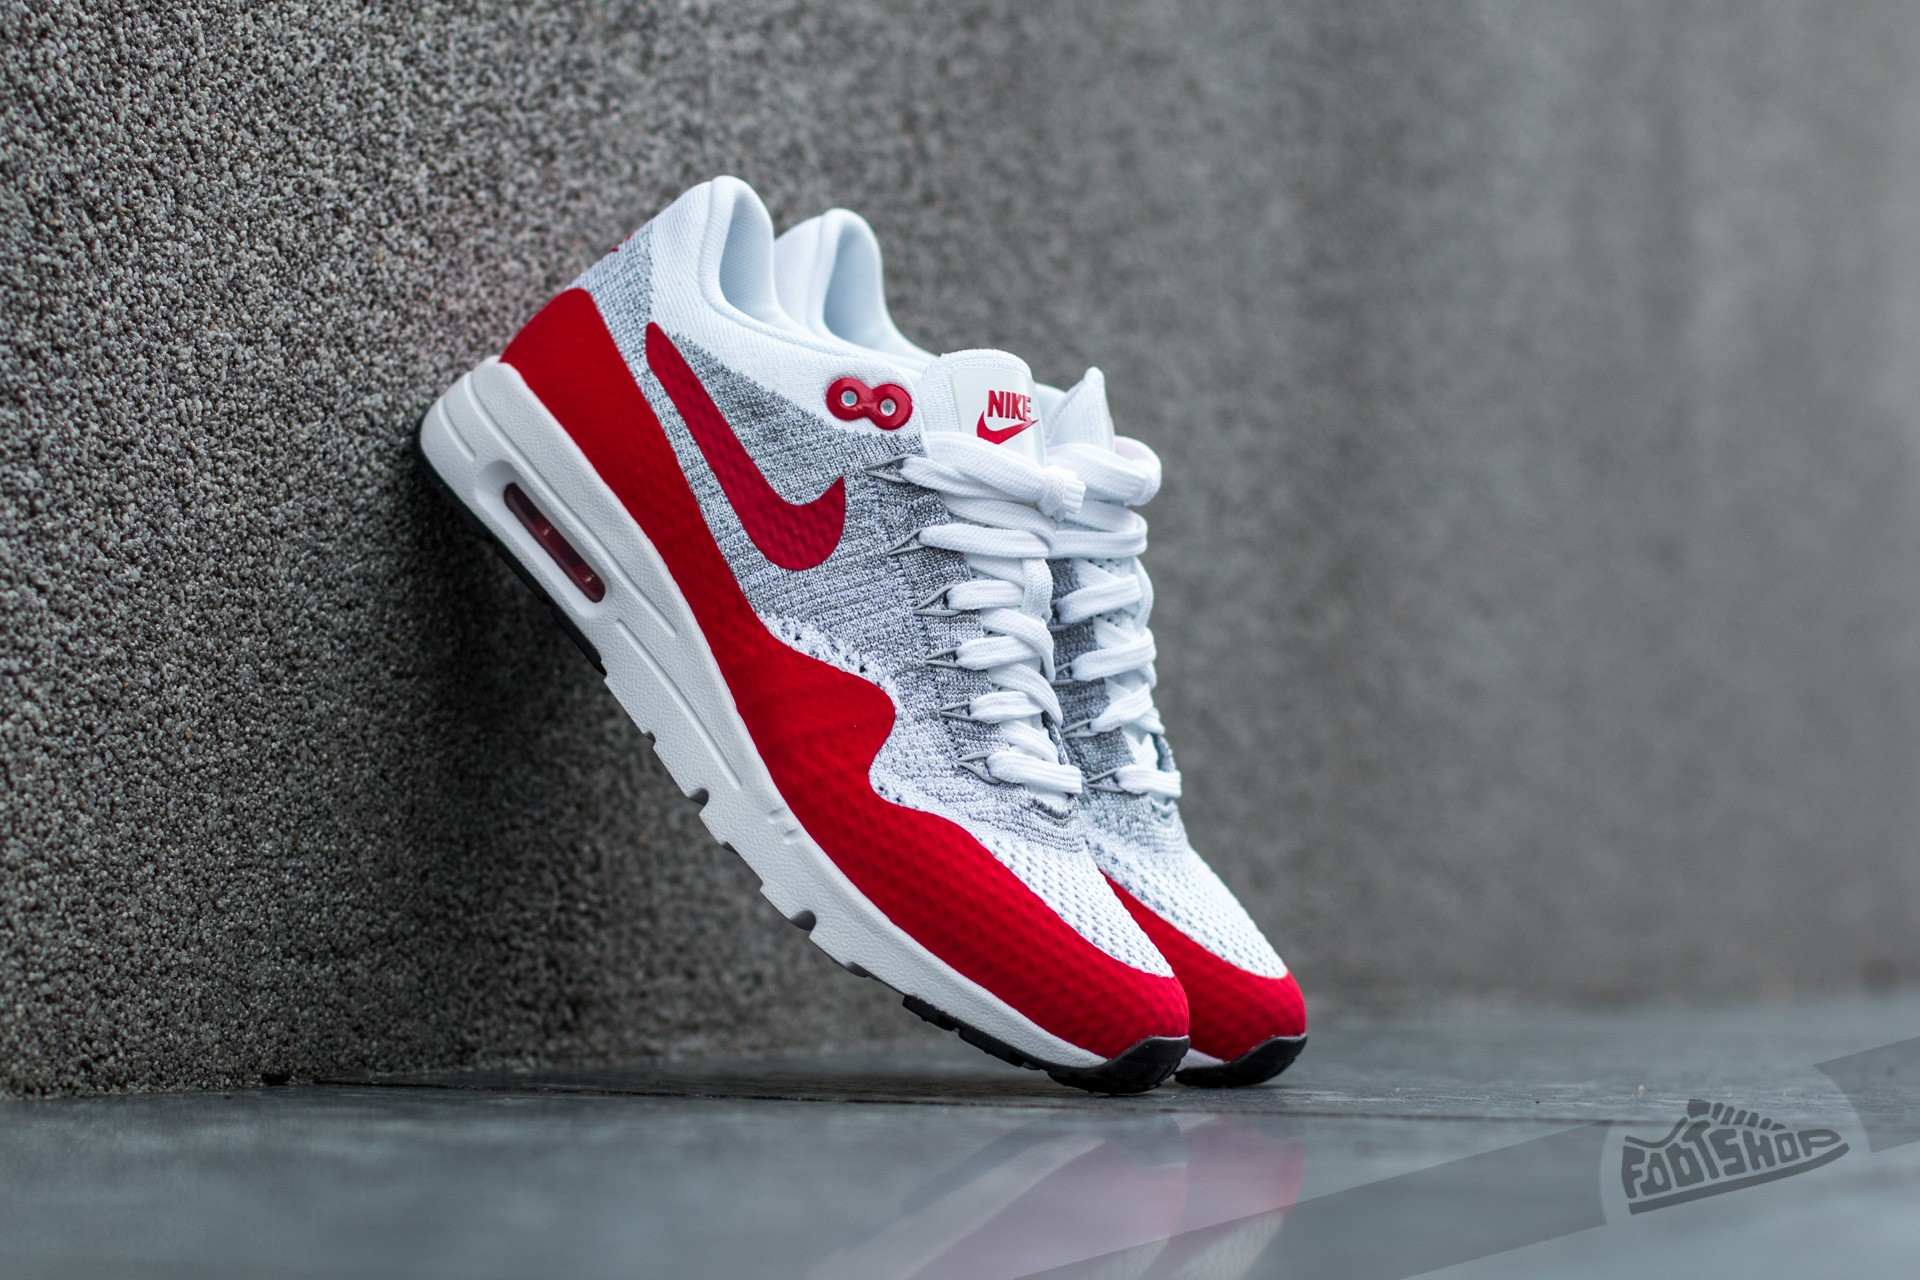 b7b0fcefe1 Nike W Air Max 1 Ultra Flyknit White/ University Red-Pure Platinum ...